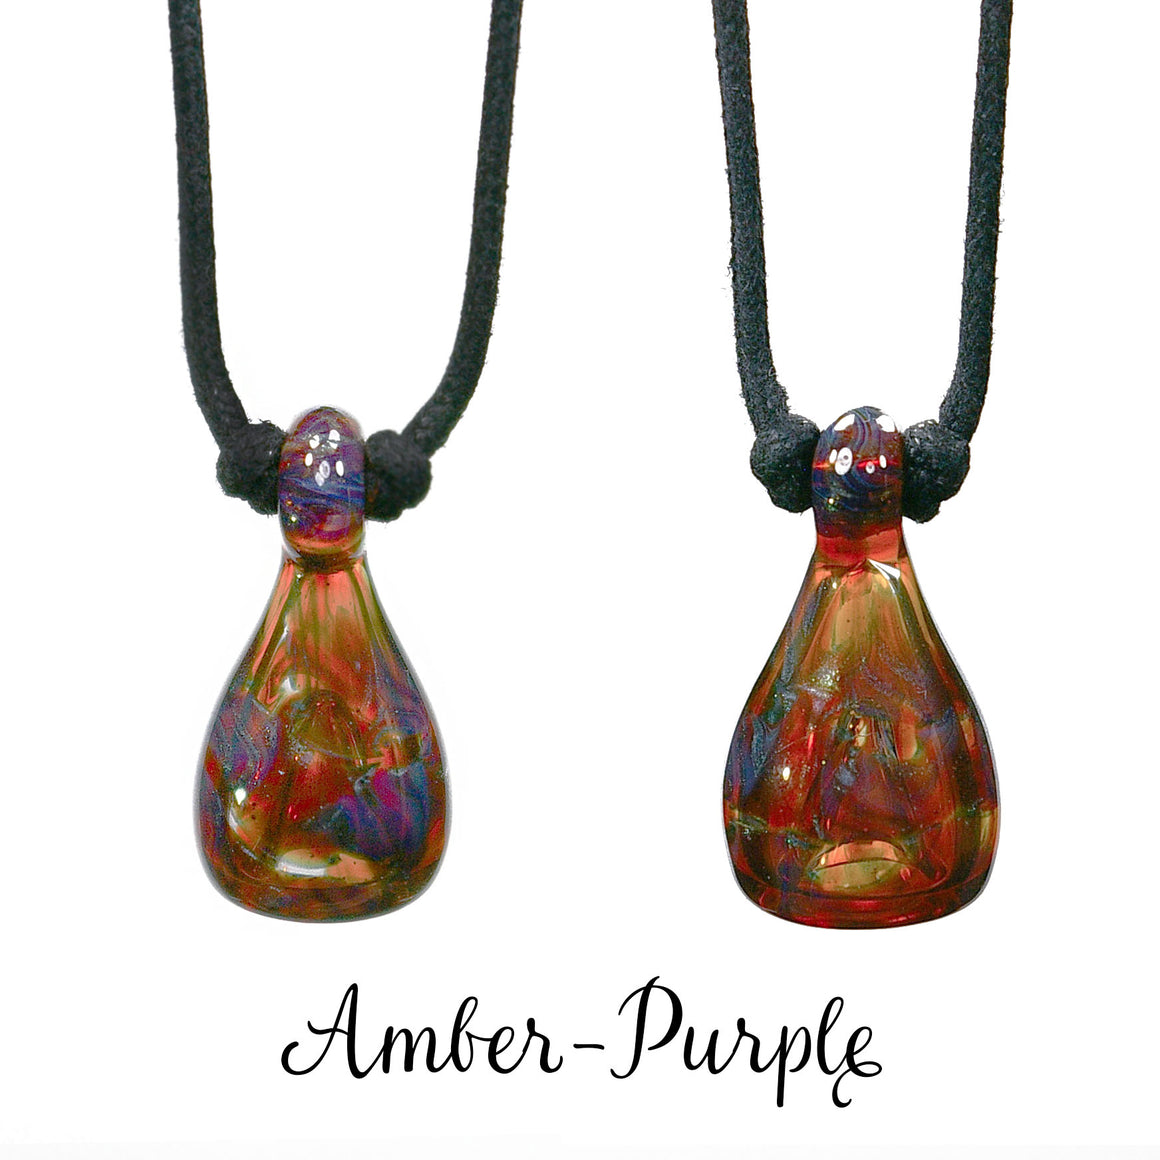 Aromatherapy Jewelry, Rake - Amber-Purple